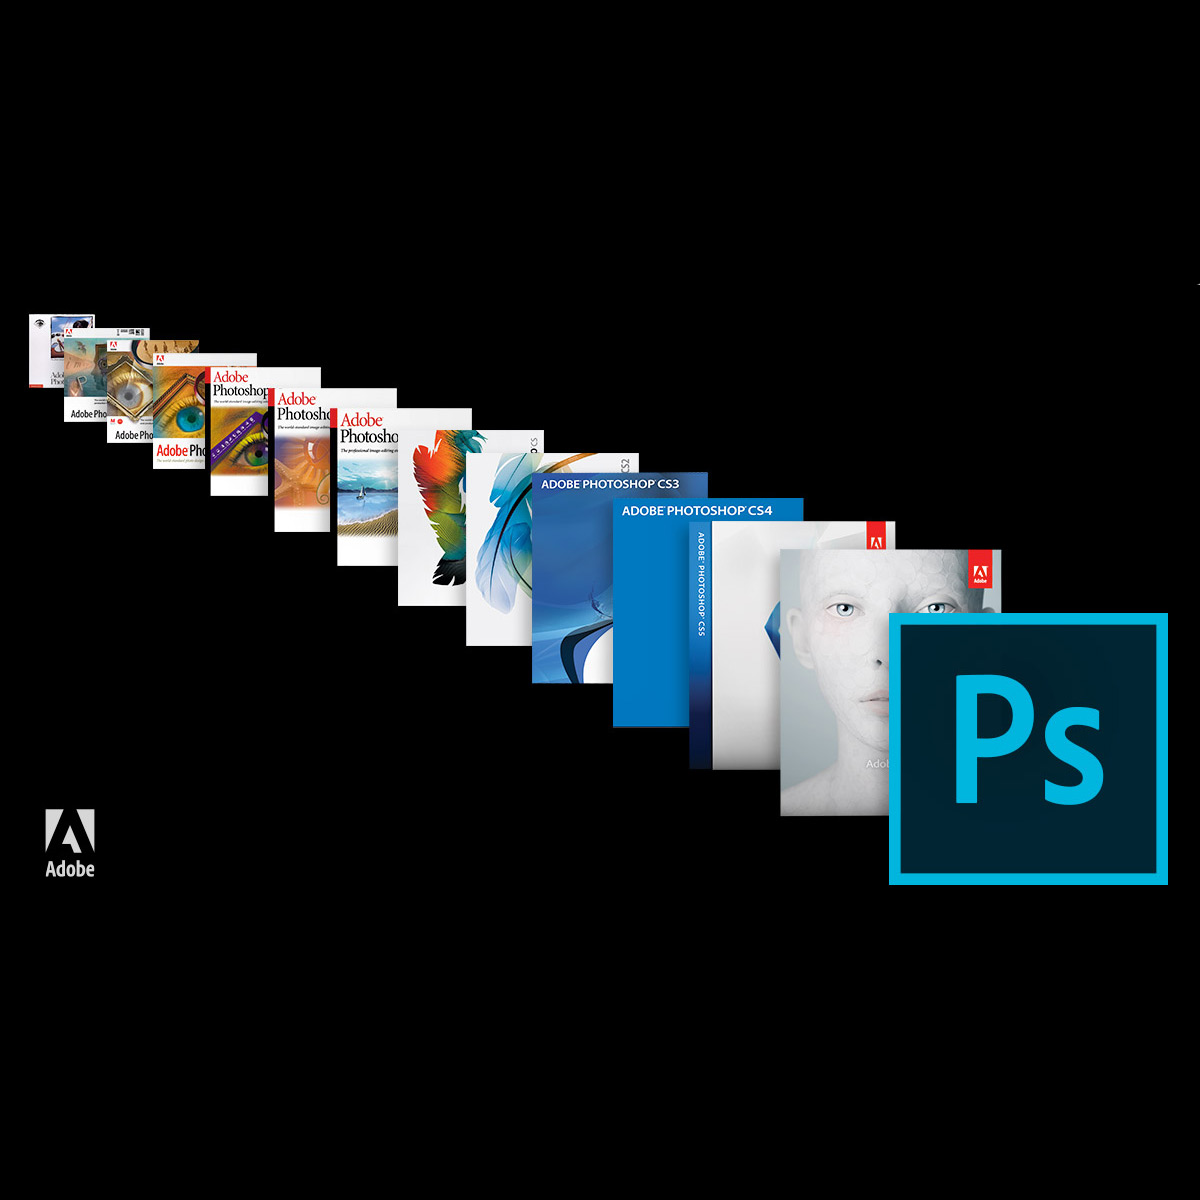 Adobe celebrates 25 years of Photoshop: Digital Photography